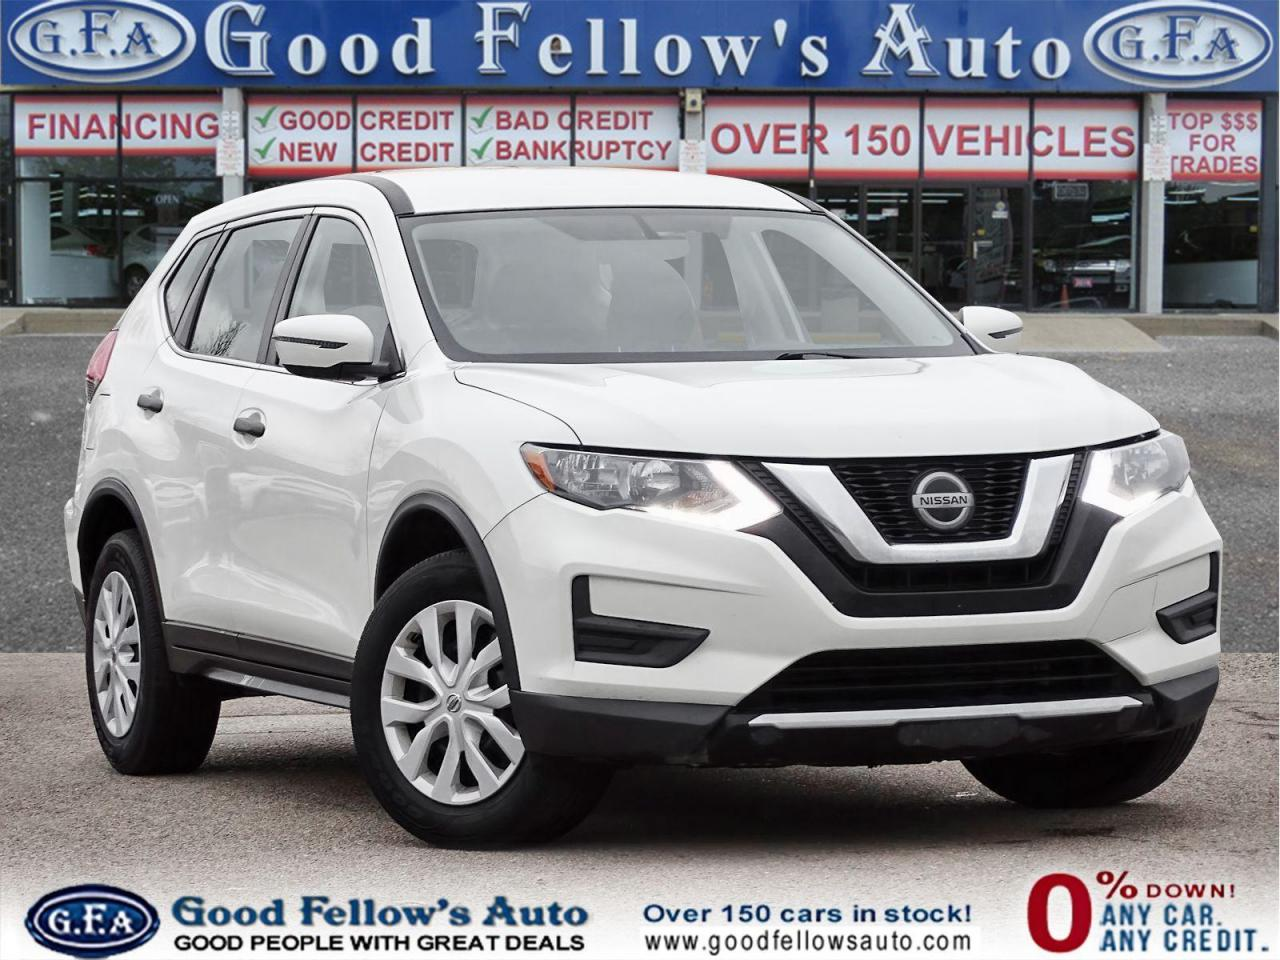 used 2017 Nissan Rogue car, priced at $13,900